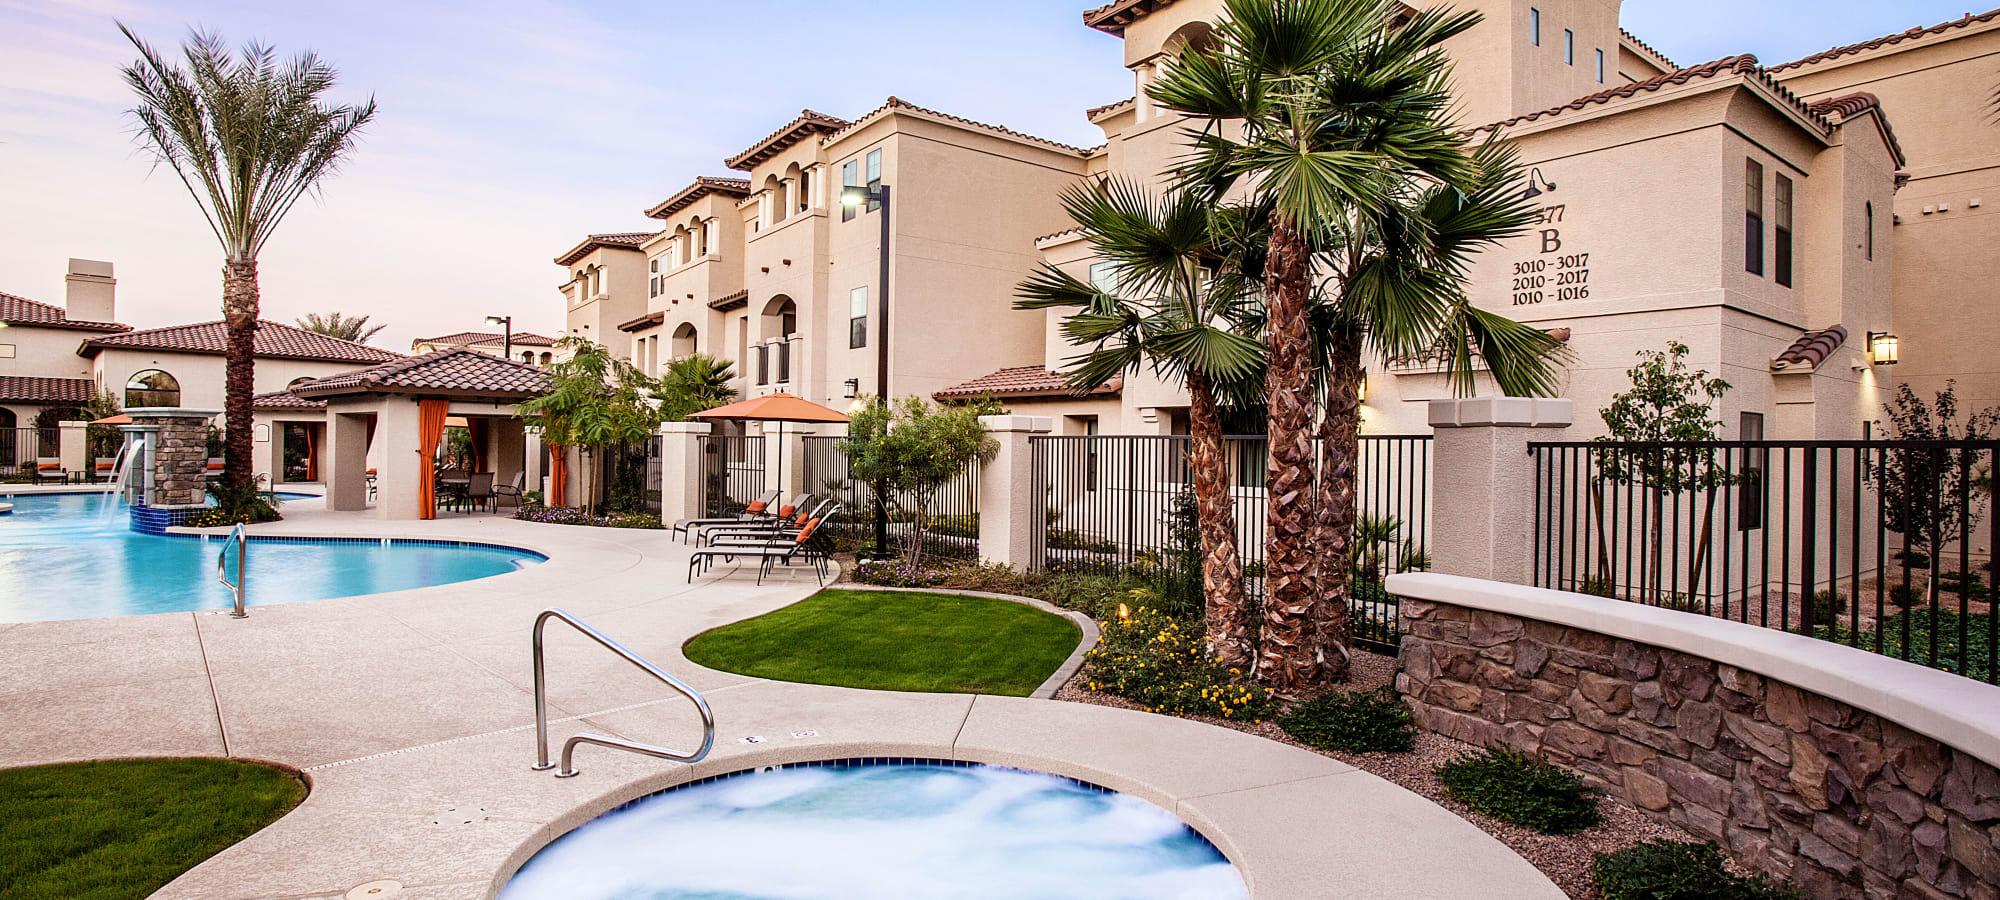 Hot tub and swimming pool area at San Marquis in Tempe, Arizona